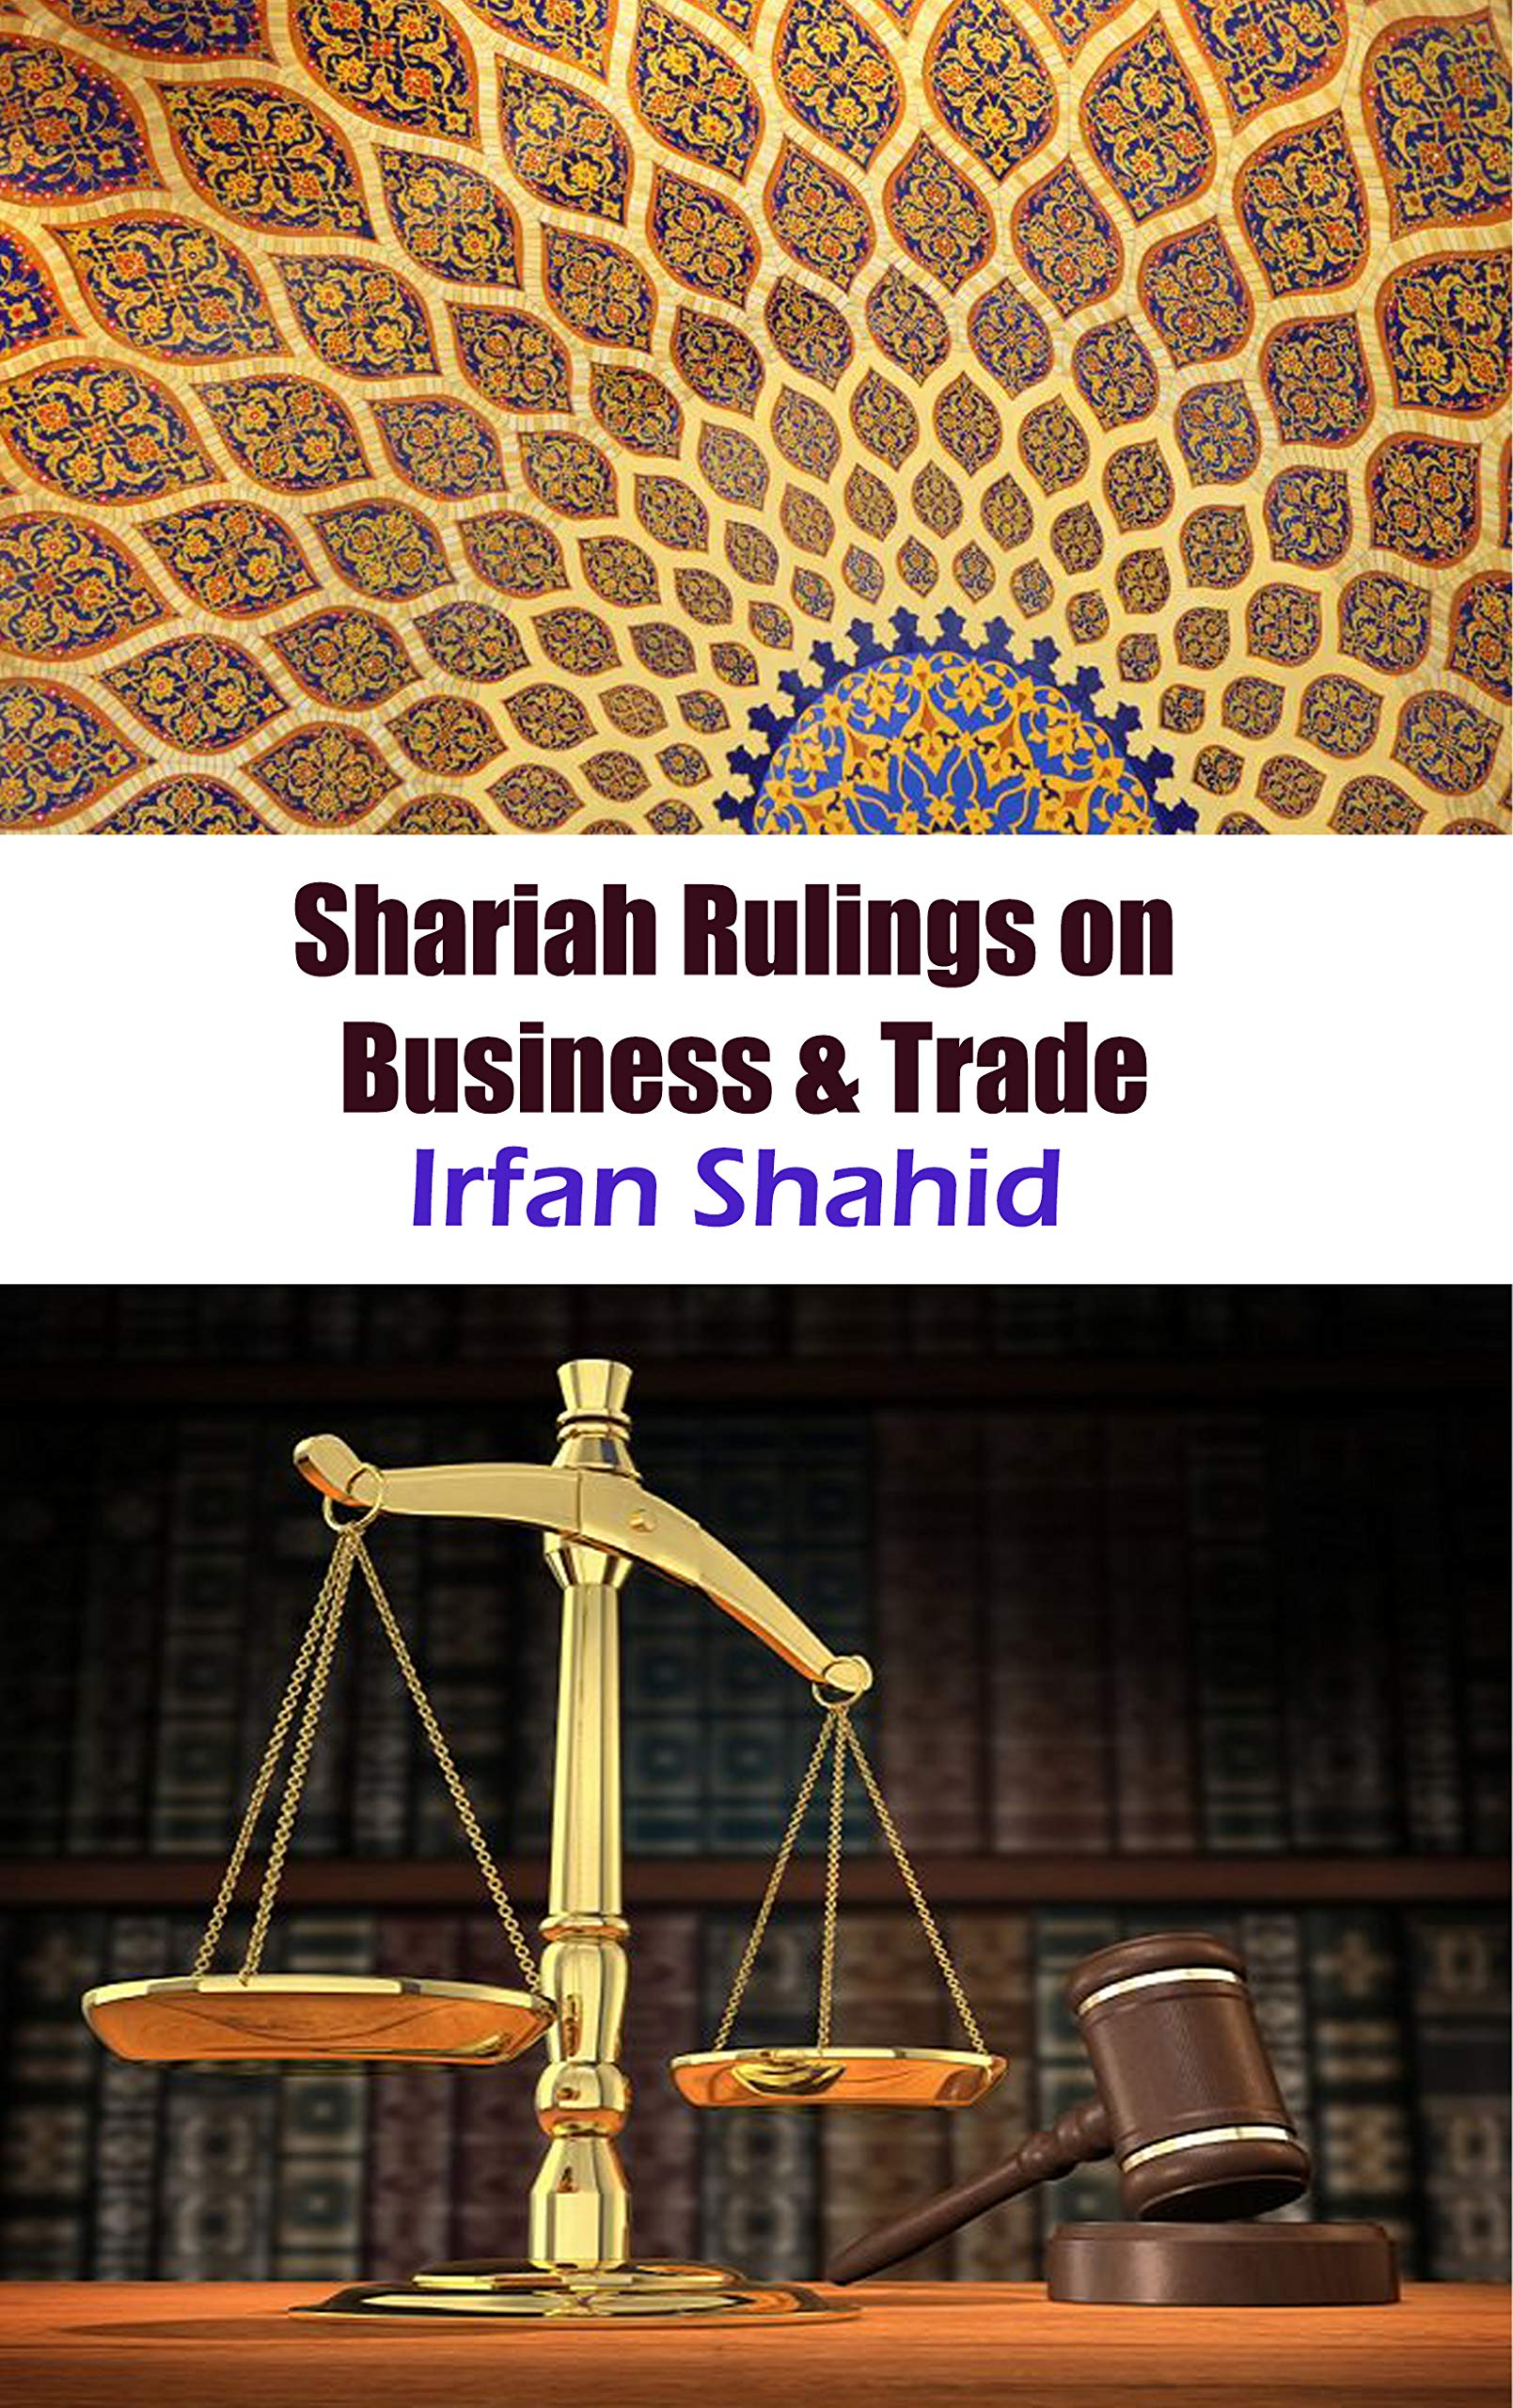 Shariah Rulings on Trade and Business